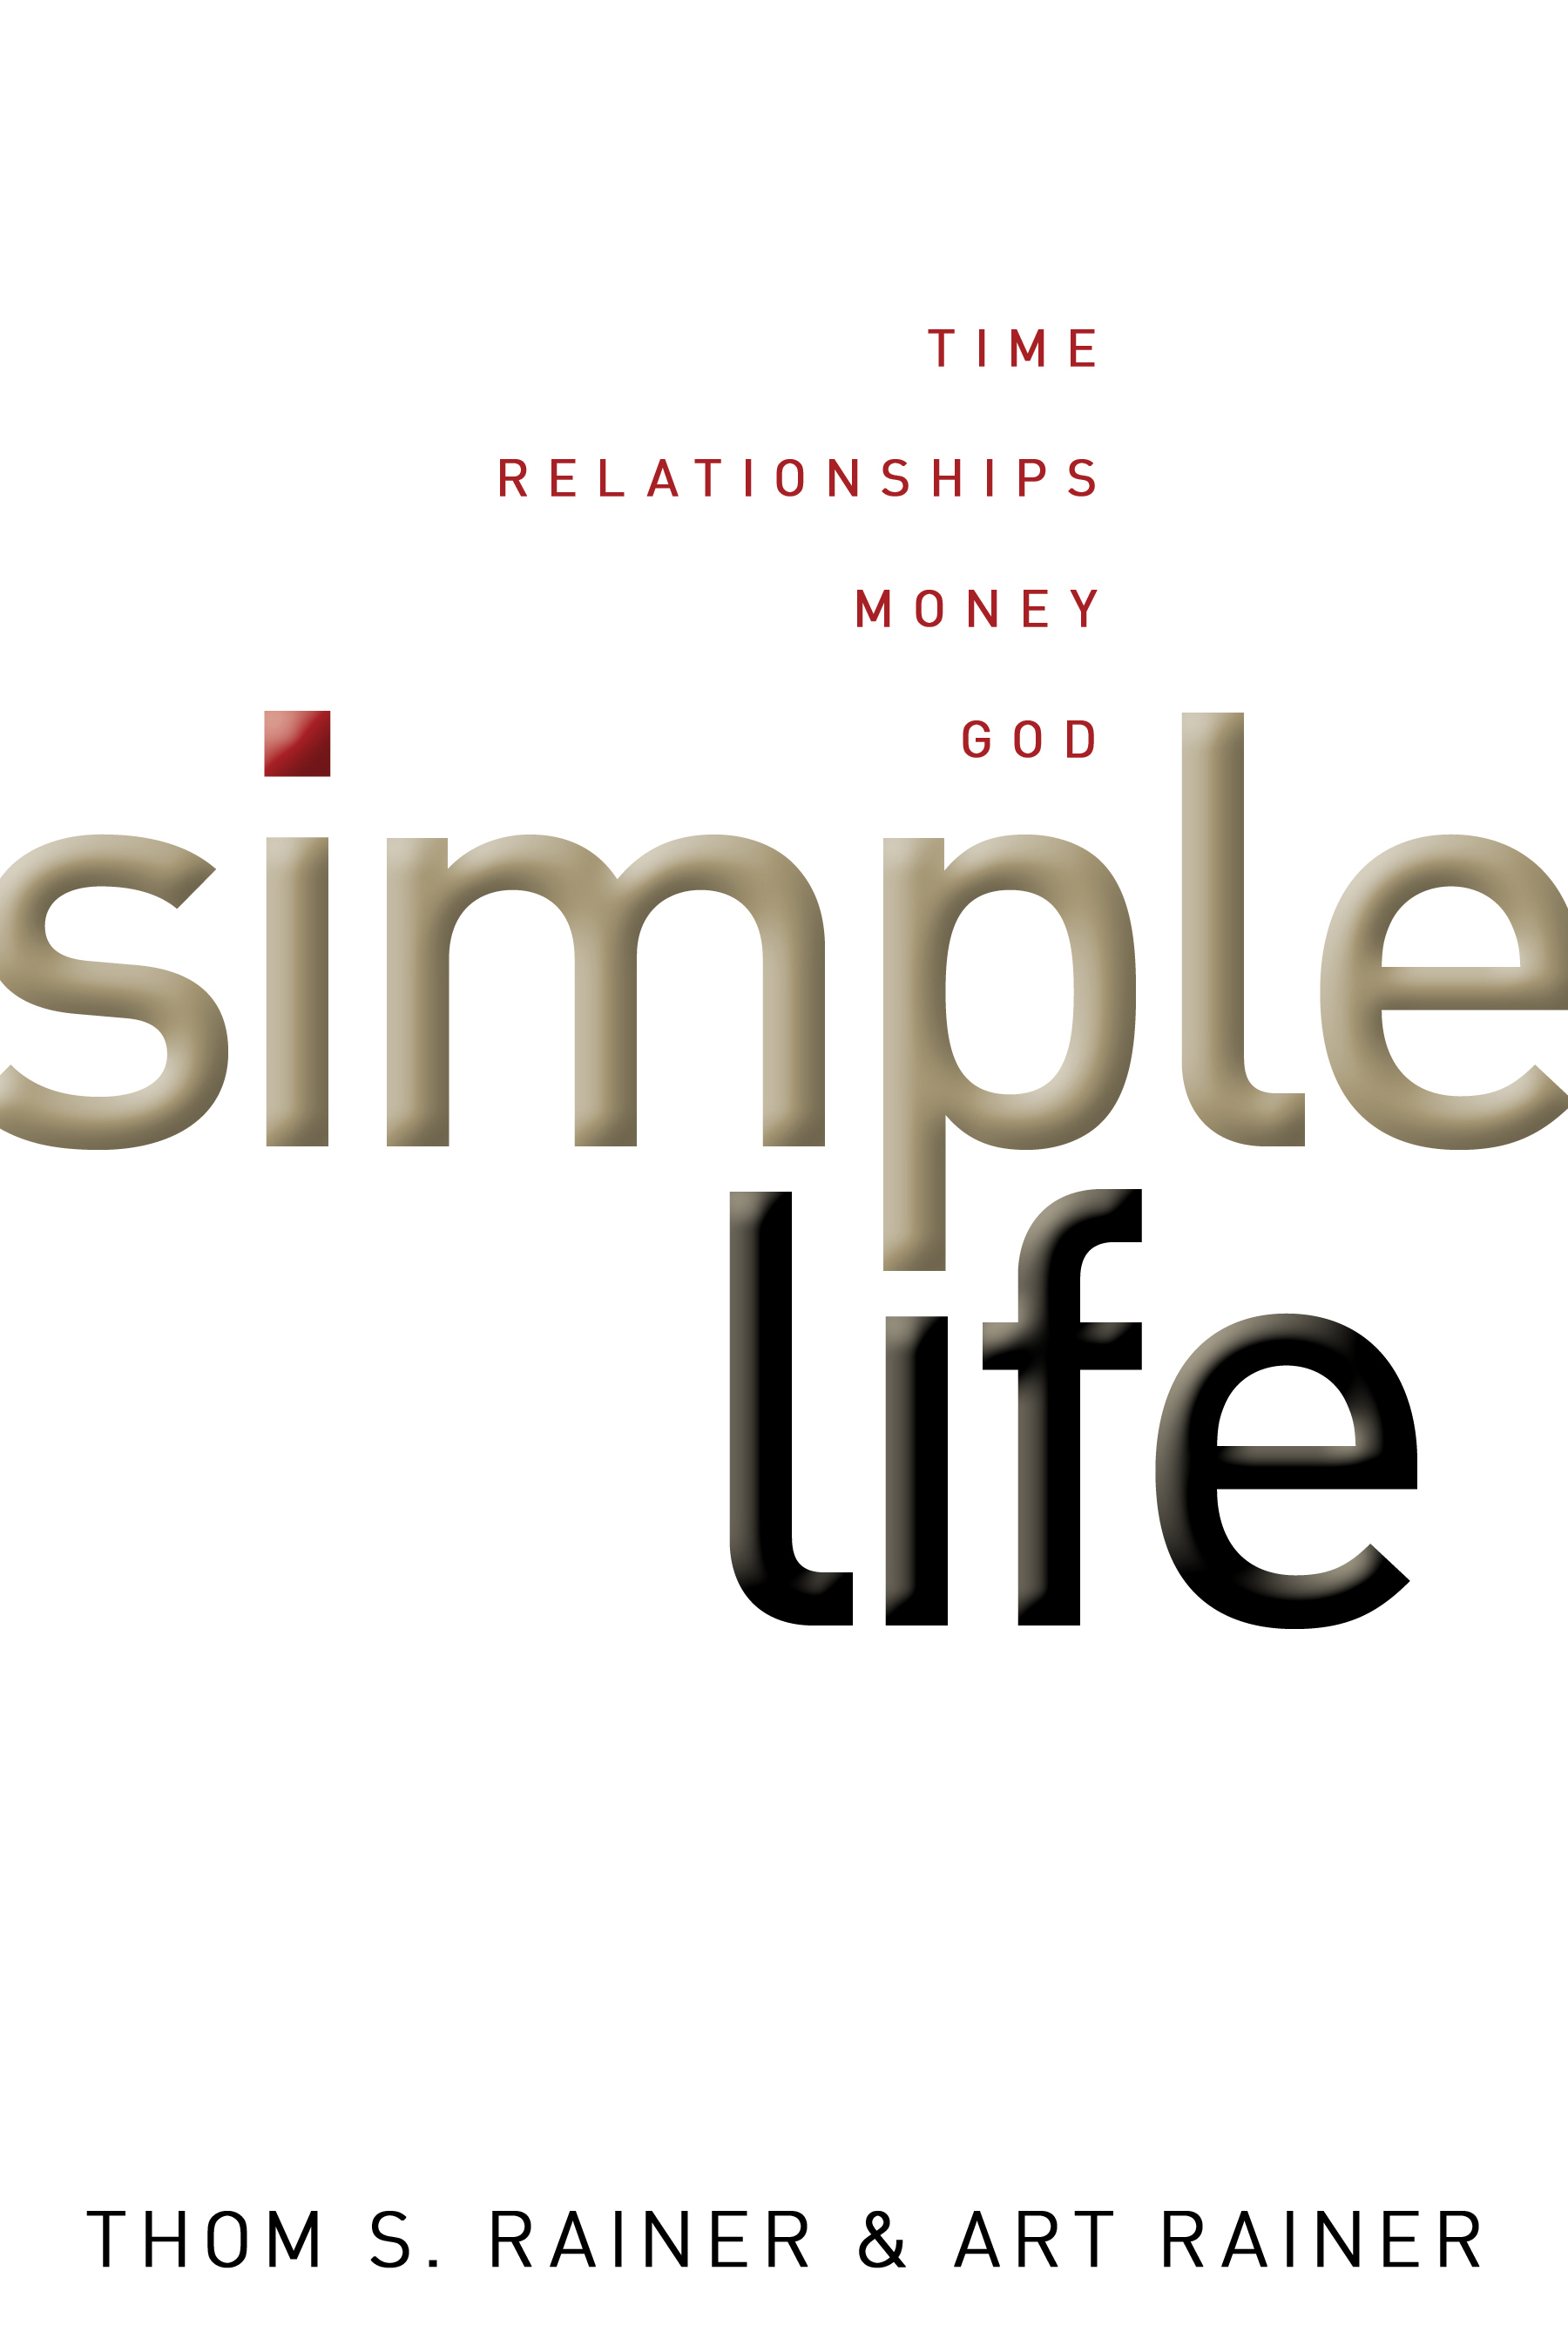 Simple life time relationships money god by thom s for Simplistic lifestyle